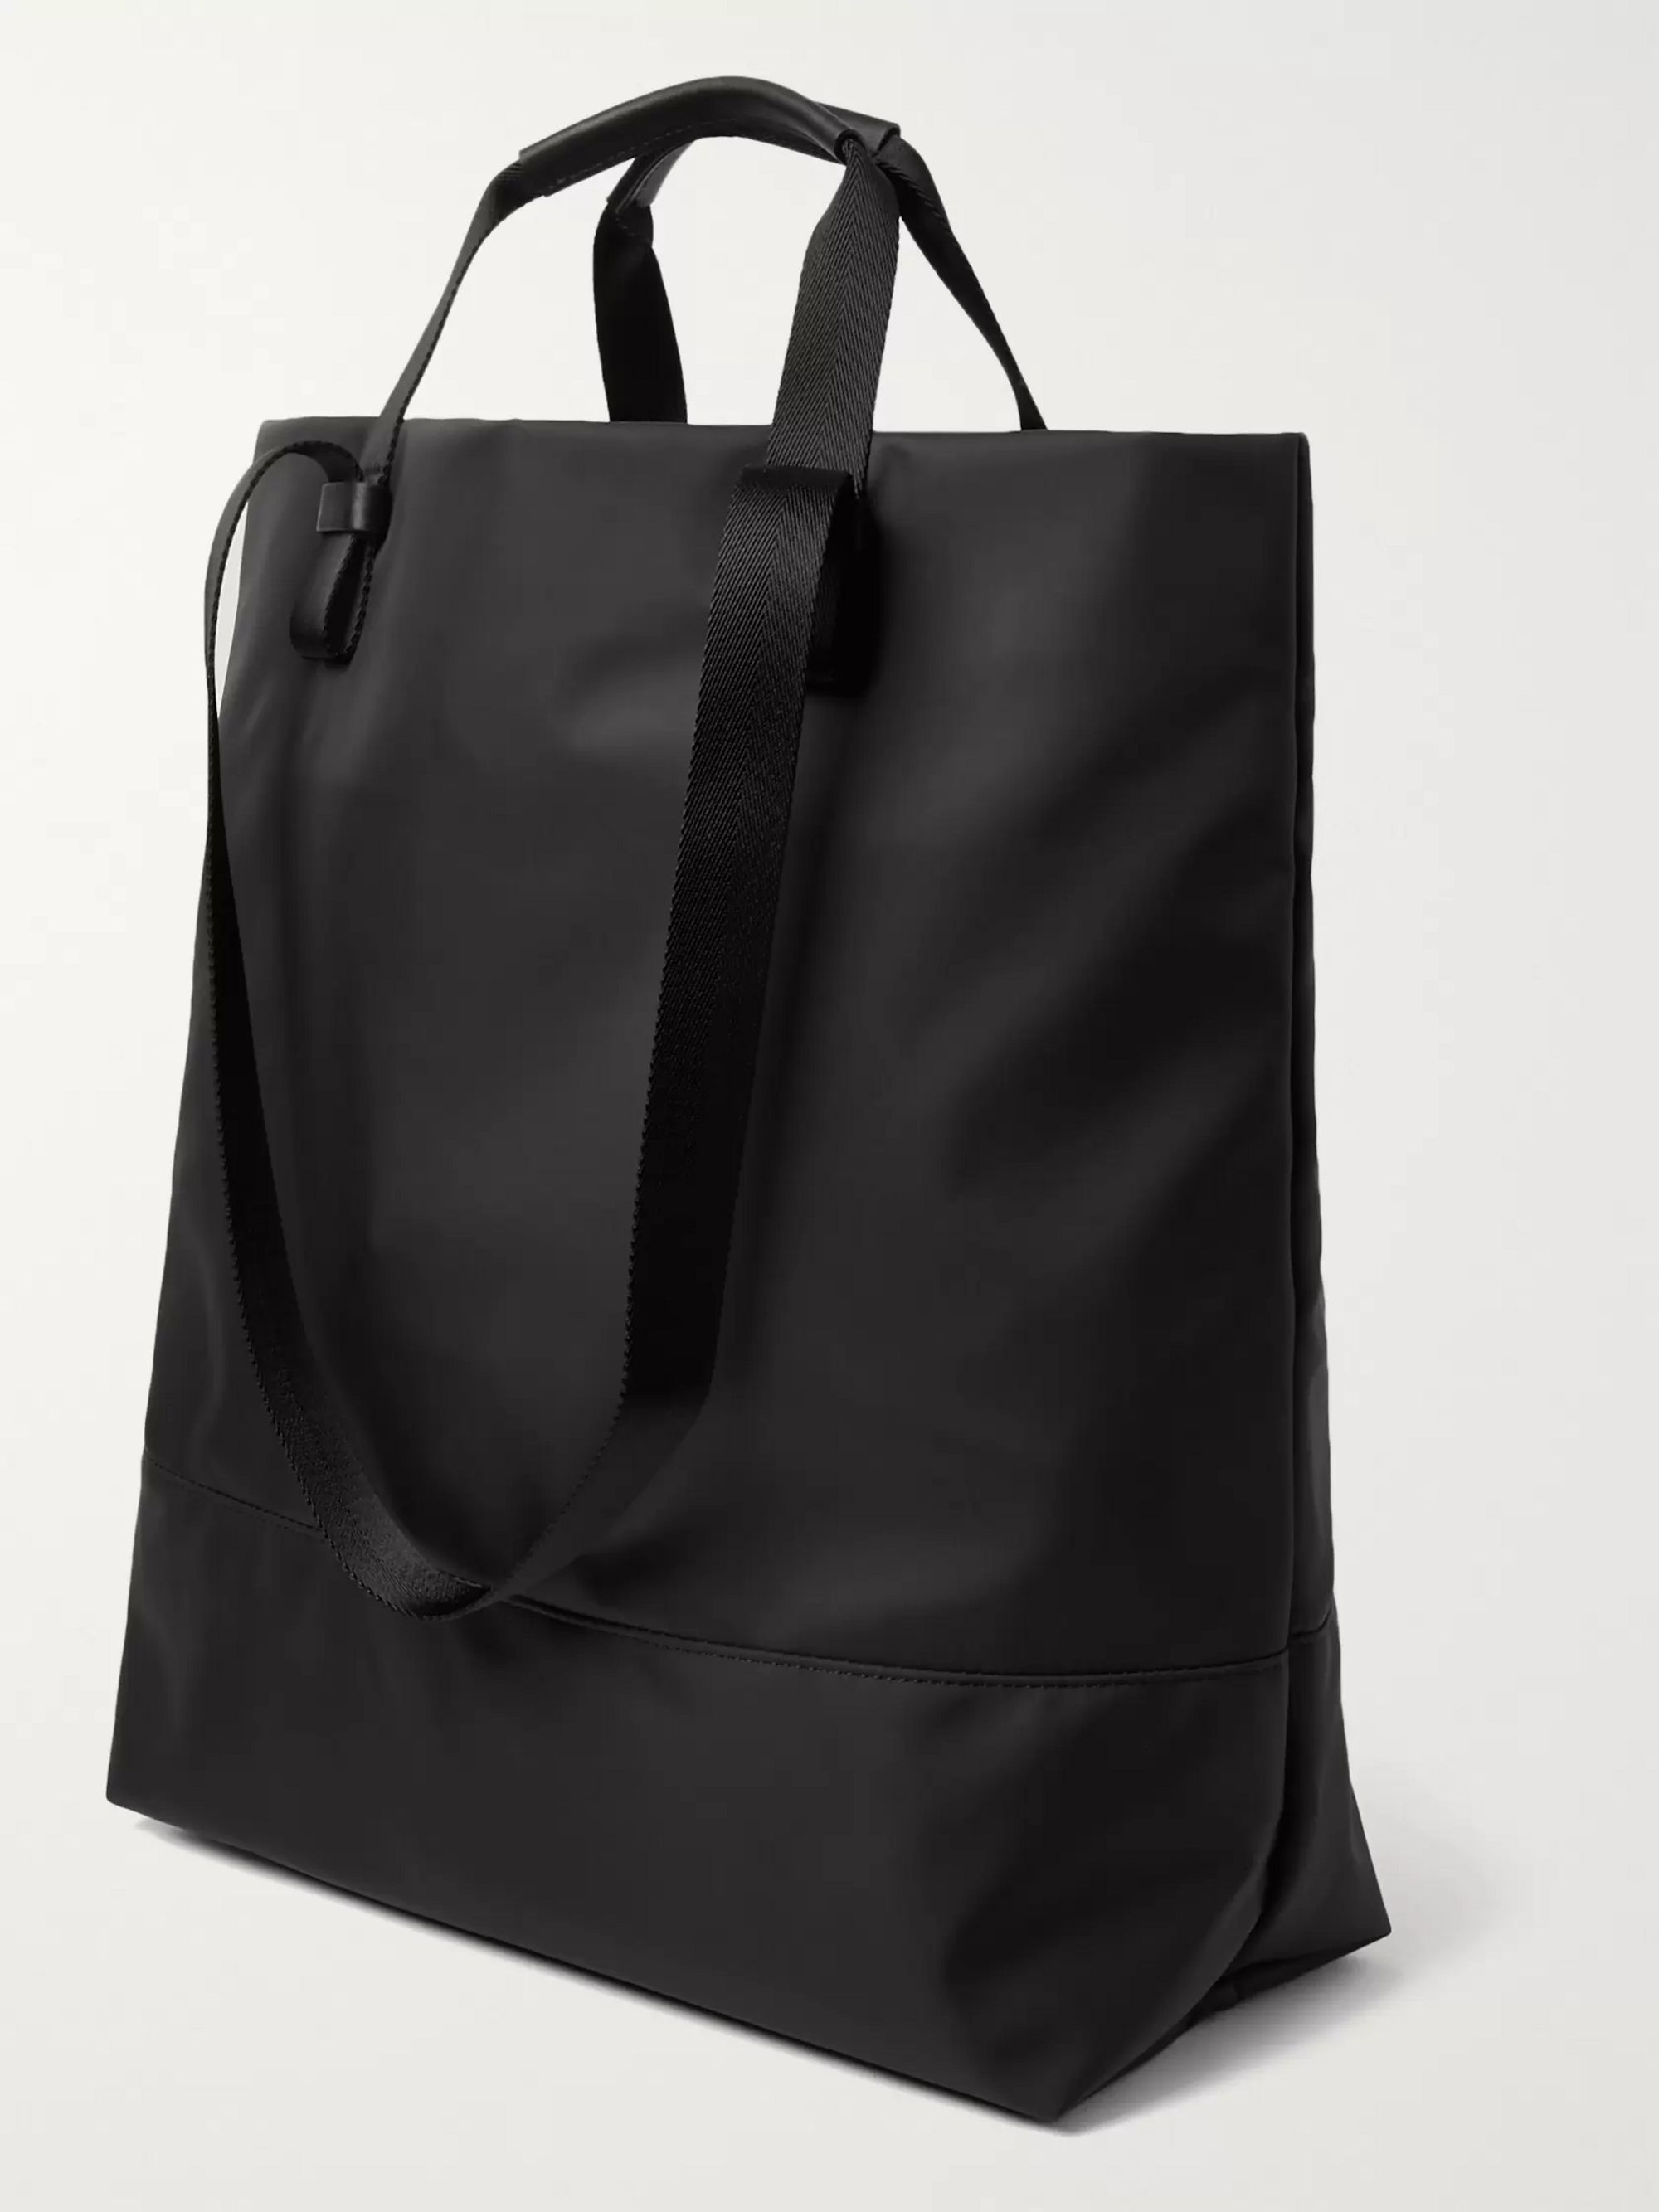 WANT LES ESSENTIELS Dayton Leather-Trimmed Nylon Tote Bag